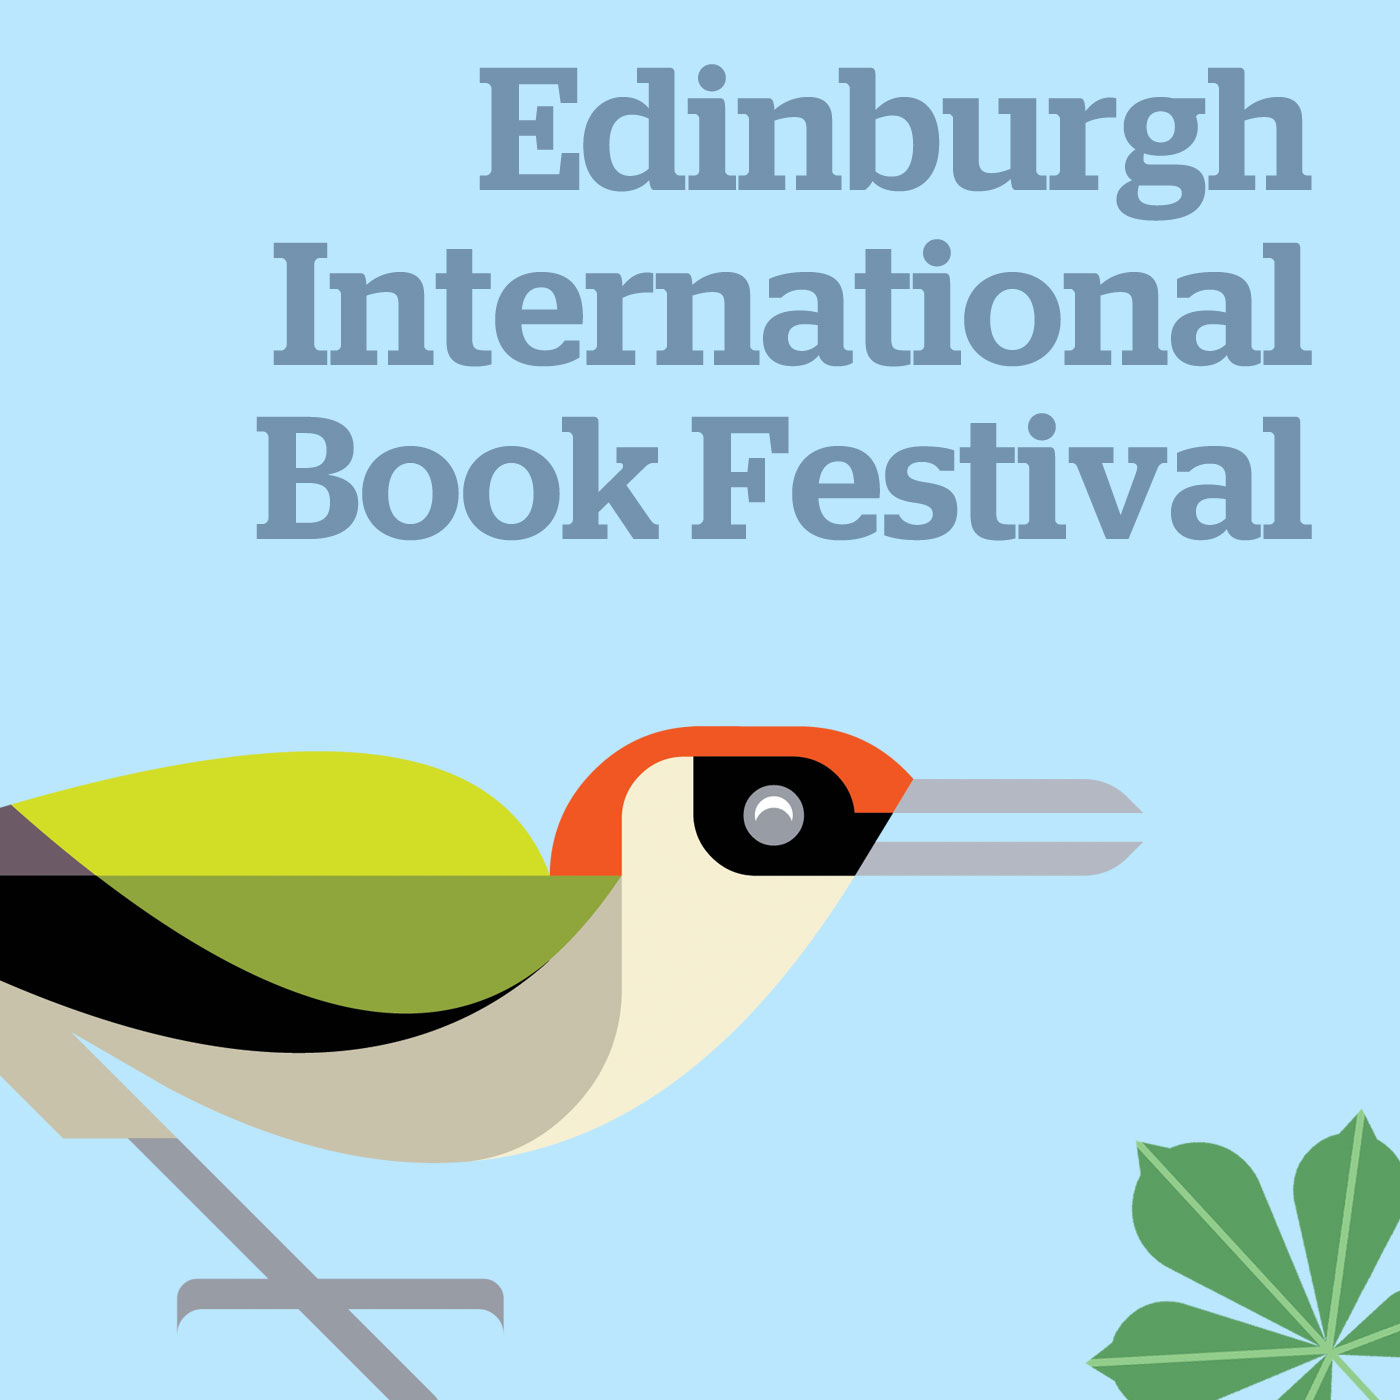 2014 Edinburgh International Book Festival